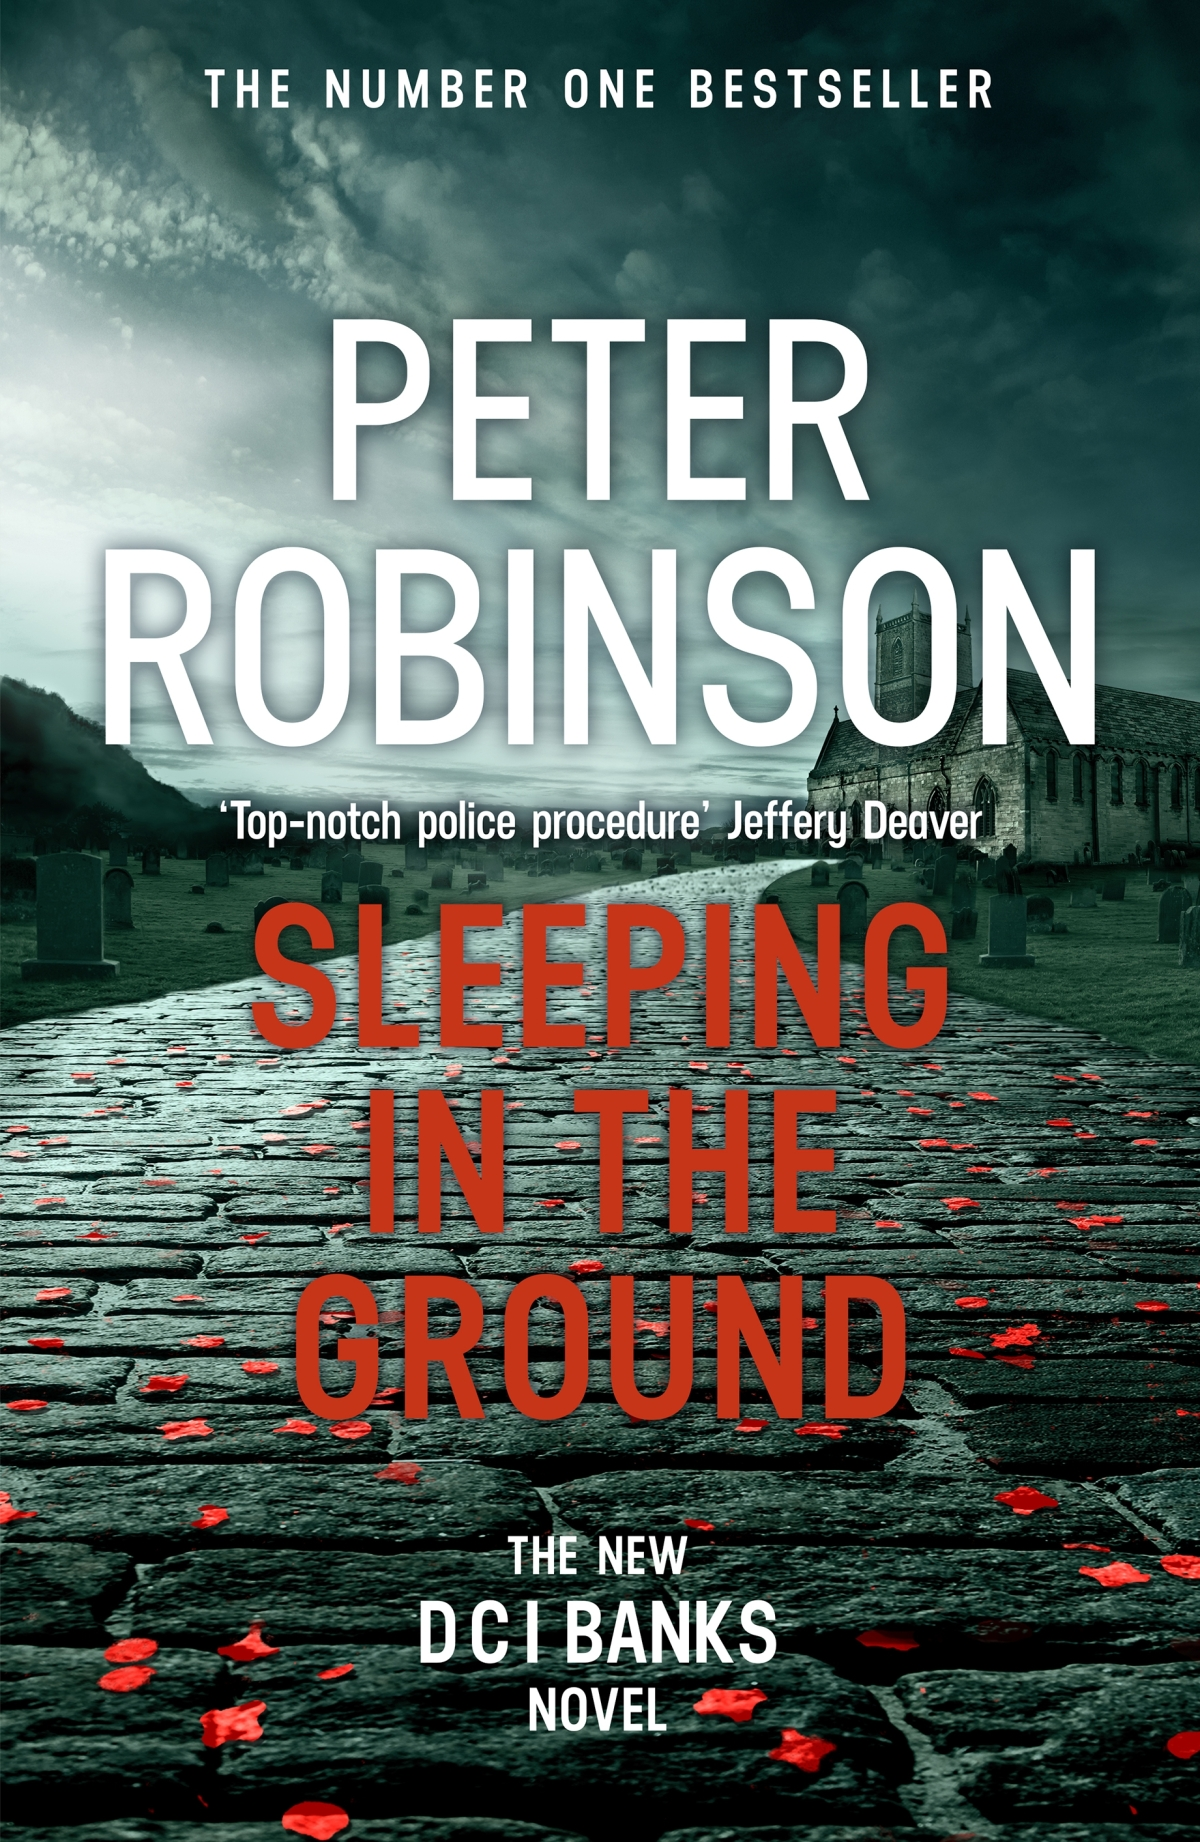 Author Q&A with PeterRobinson